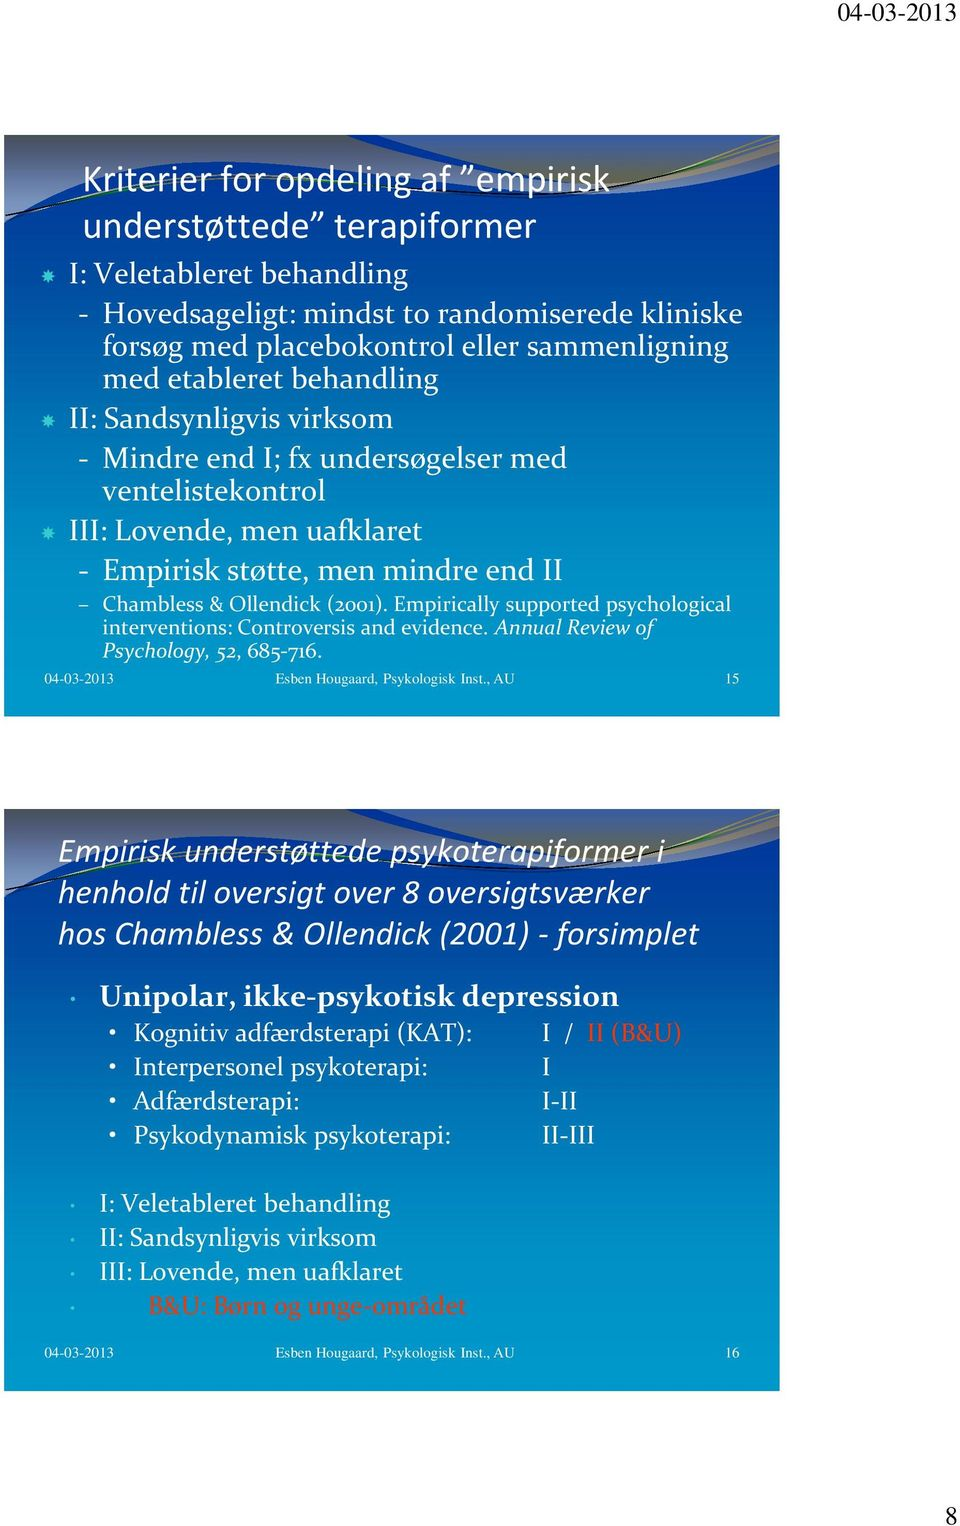 Empirically supported psychological interventions: Controversis and evidence. Annual Review of Psychology, 52, 685-716. 04-03-2013 Esben Hougaard, Psykologisk Inst.